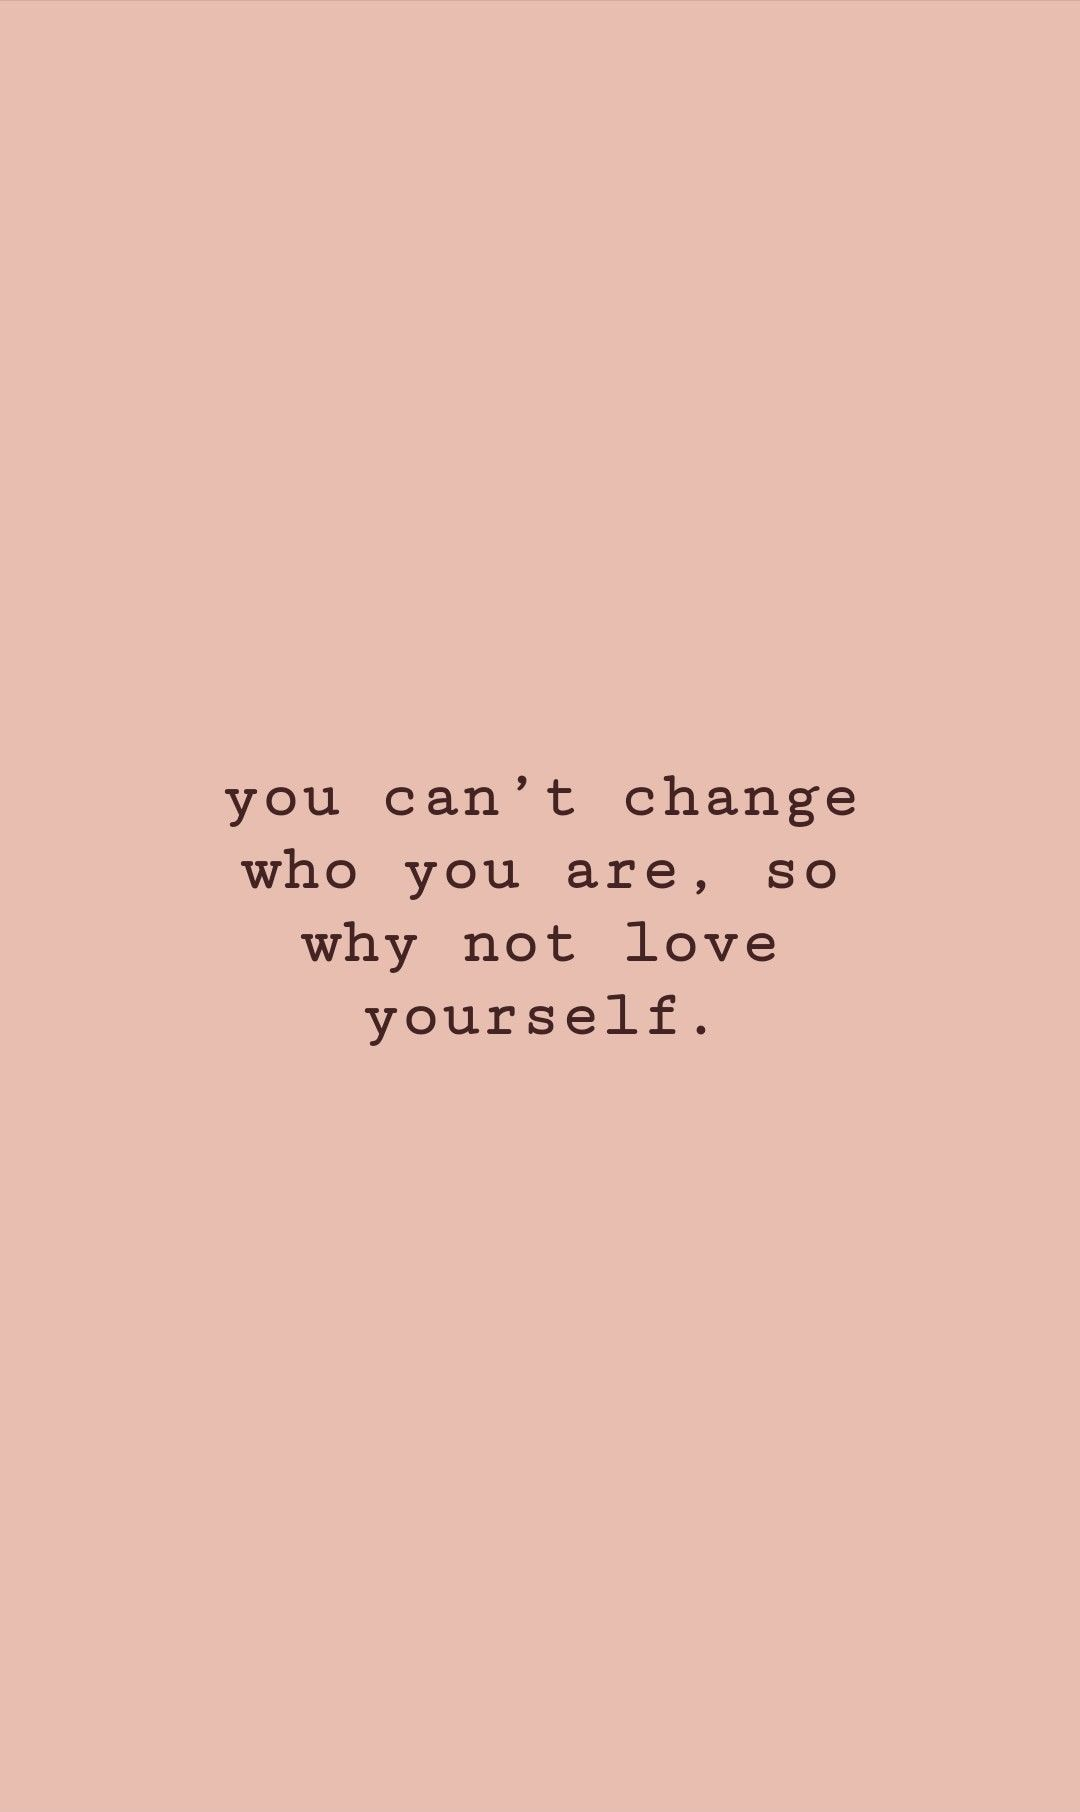 selflove #love #positivity #positive #quote #quotes #happy